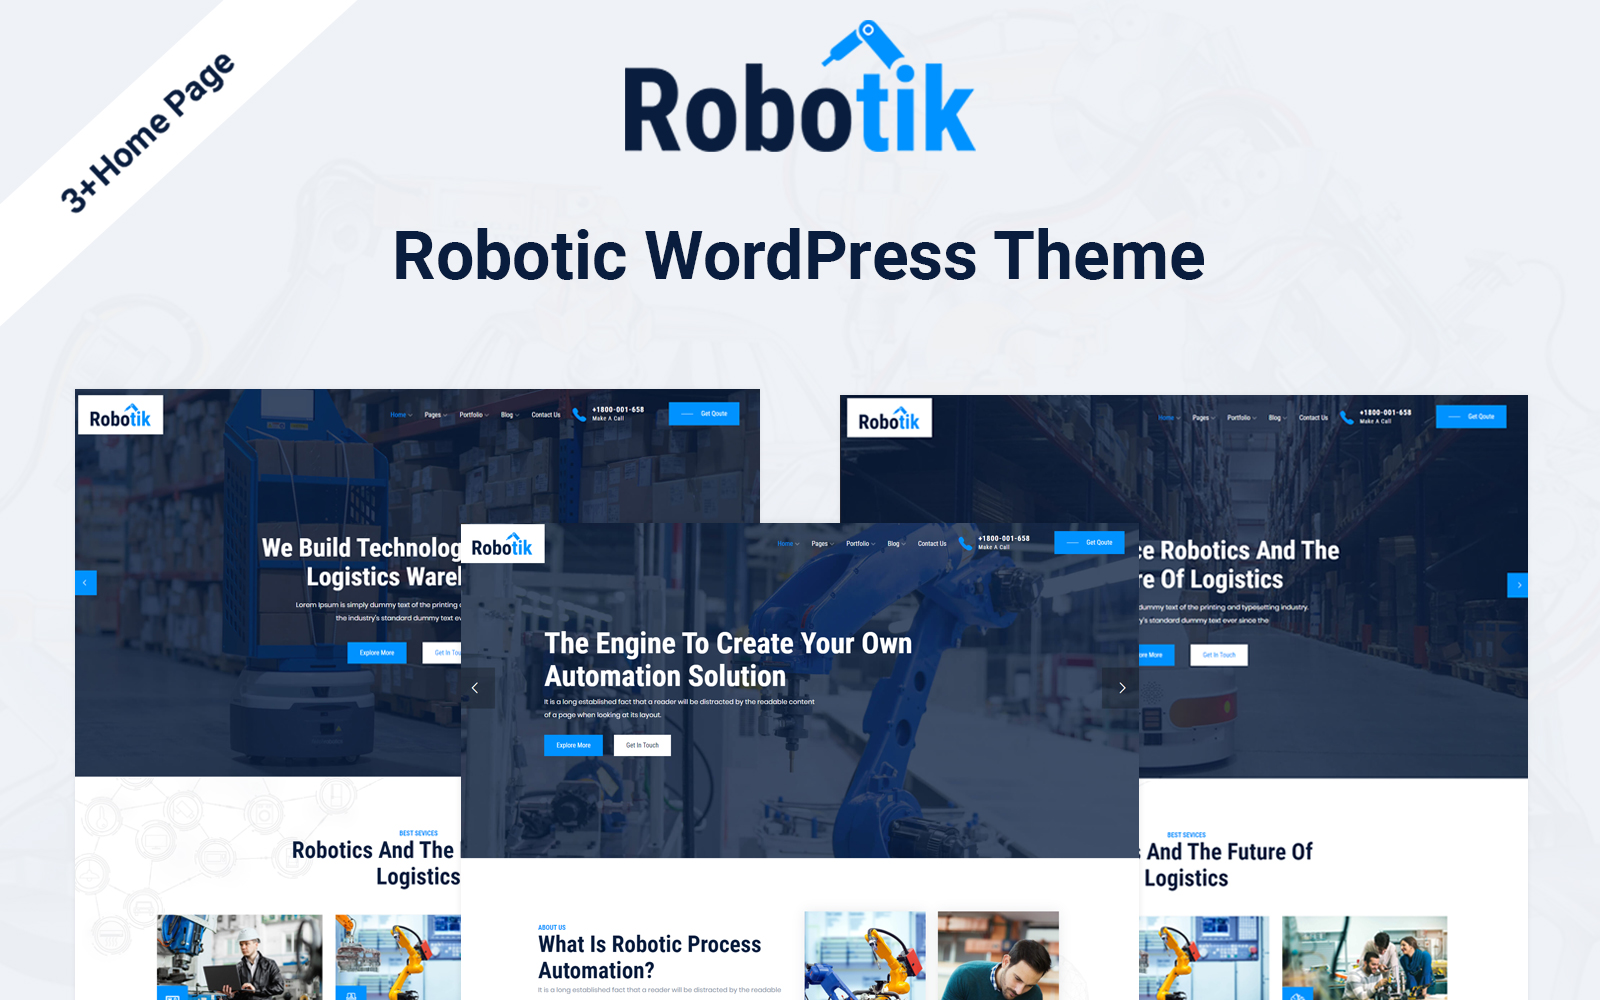 Robotik - Robotic Automation WordPress Theme